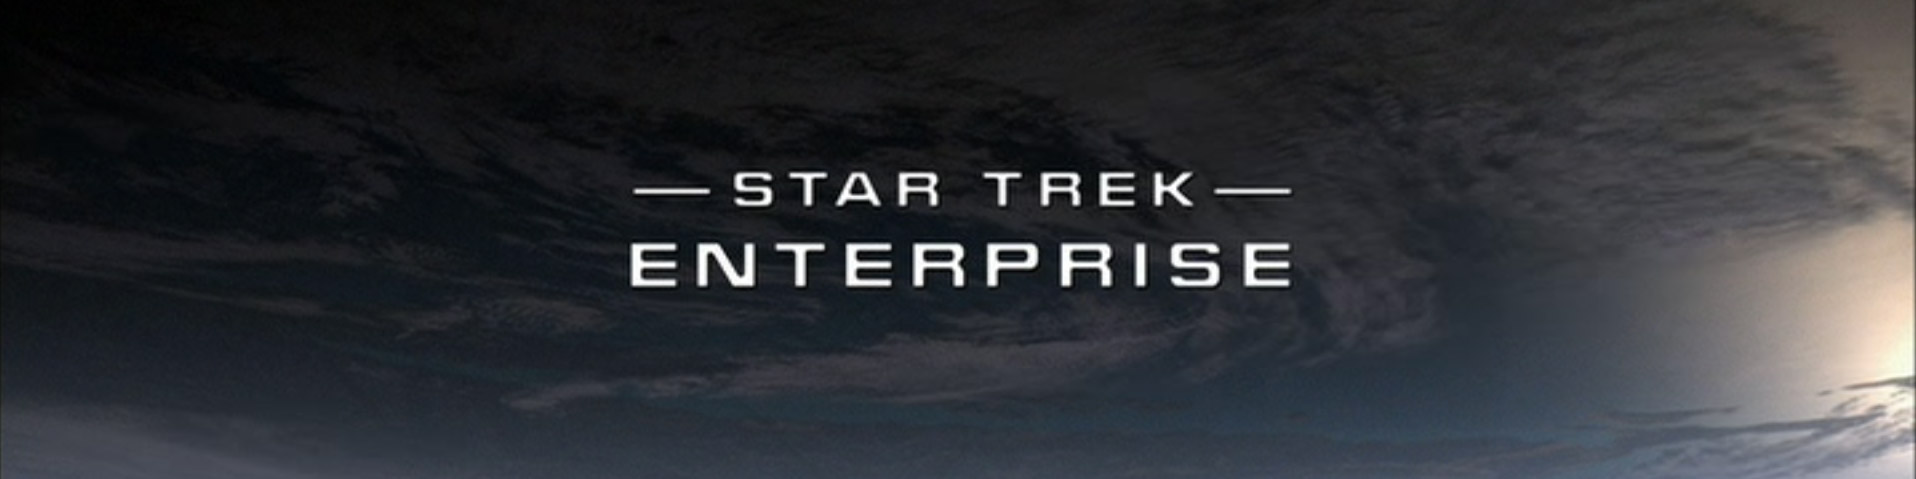 ™ & © 2016 CBS Studios Inc. – The Star Trek: Enterprise logo as seen in the title sequences of the Star Trek: Enterprise television series.